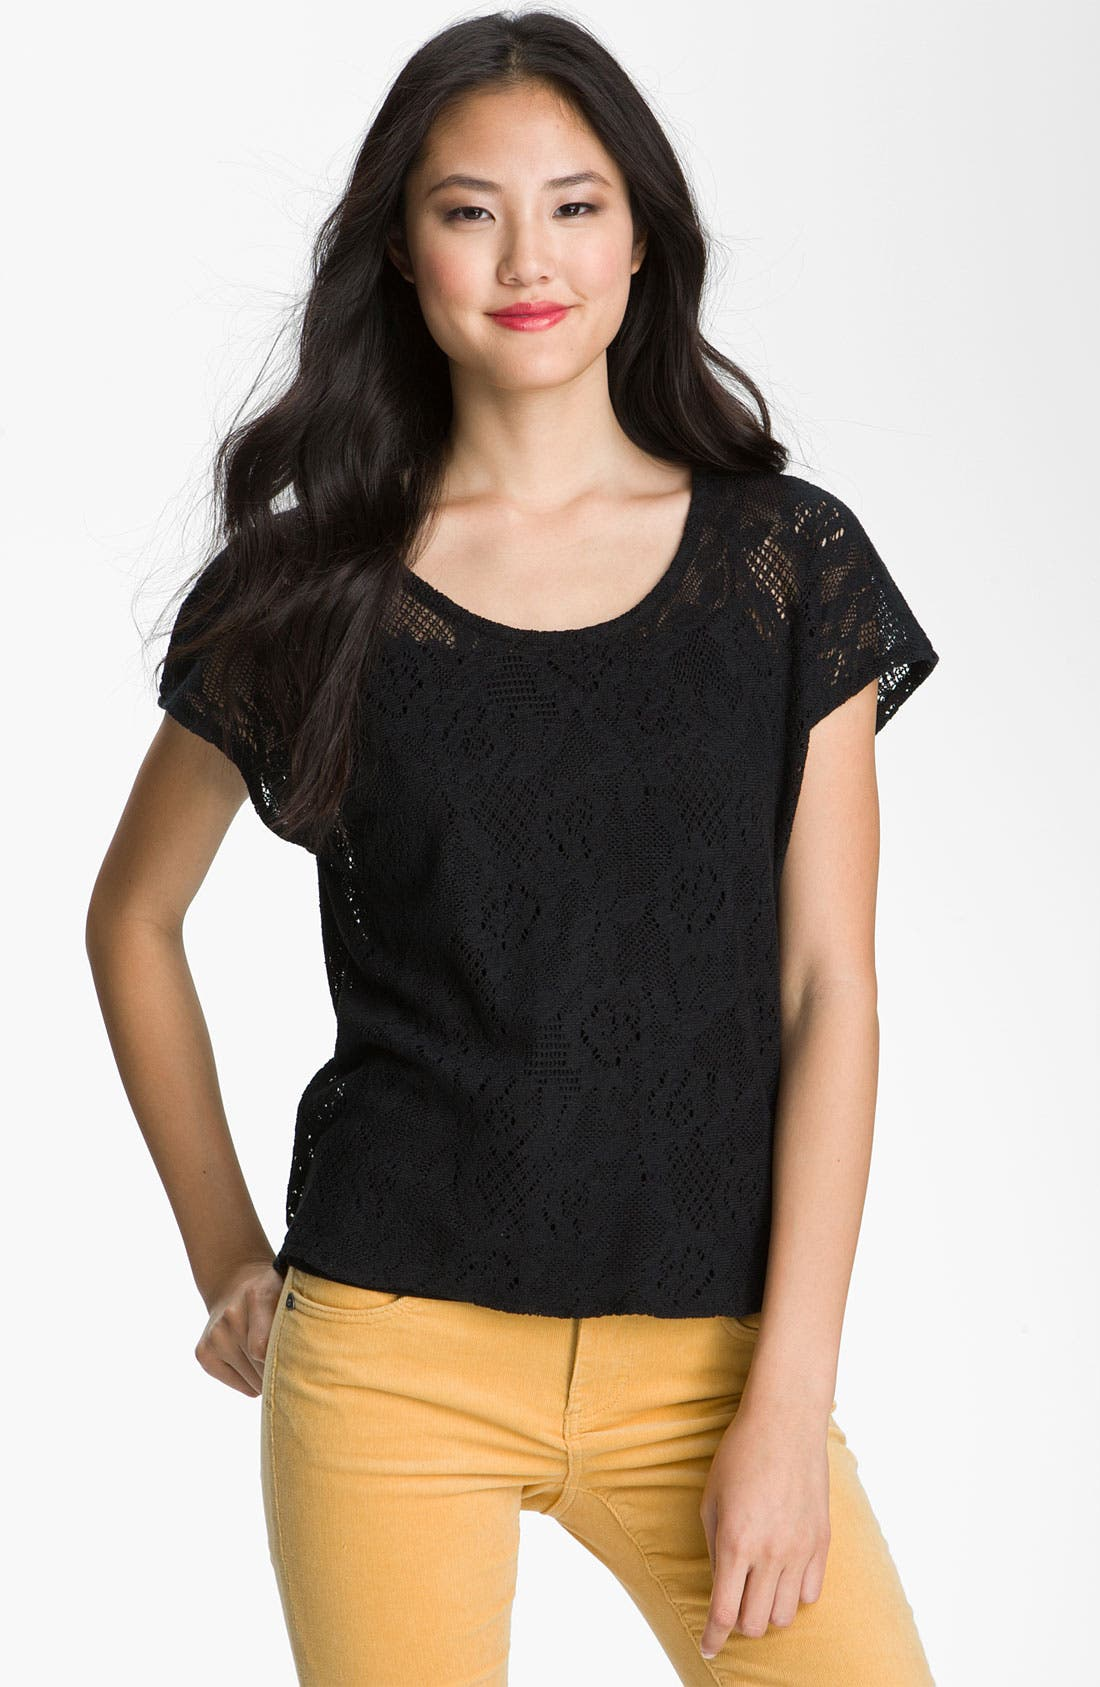 Alternate Image 1 Selected - Lucky Brand 'Ginger' Sheer Lace Top (Special Purchase)